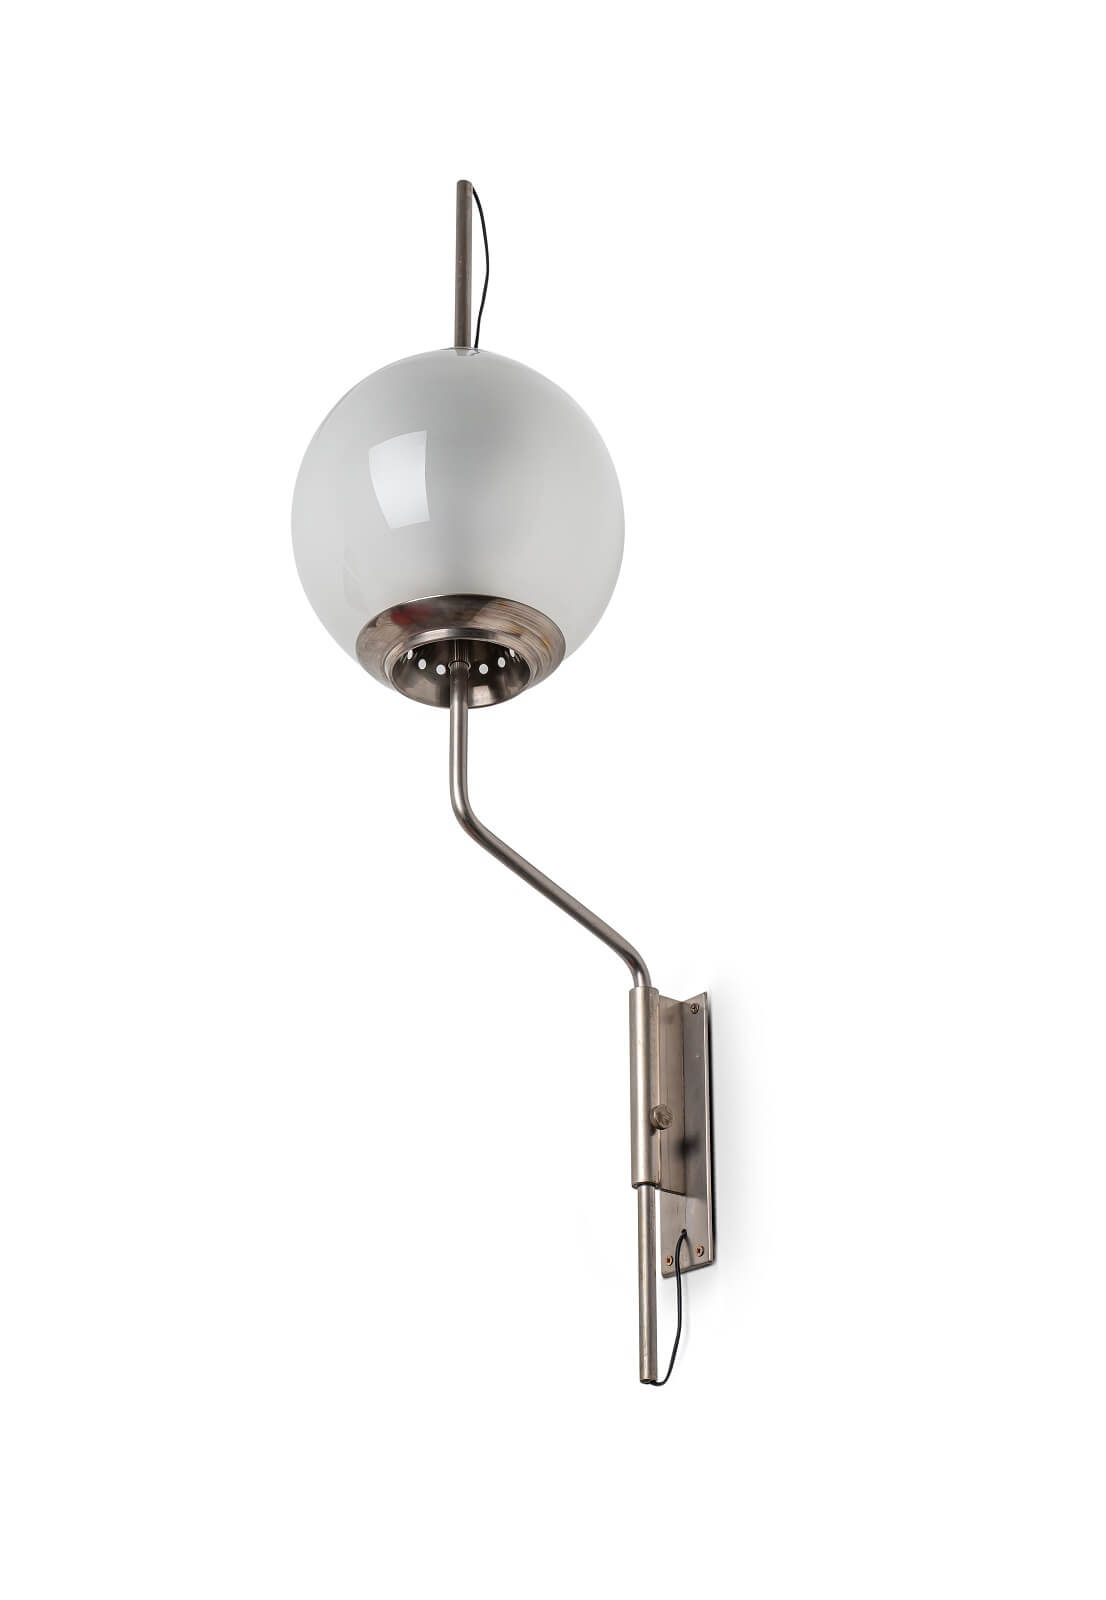 Wall lamp mod. Lp 11 by Luigi Caccia Dominioni for sale